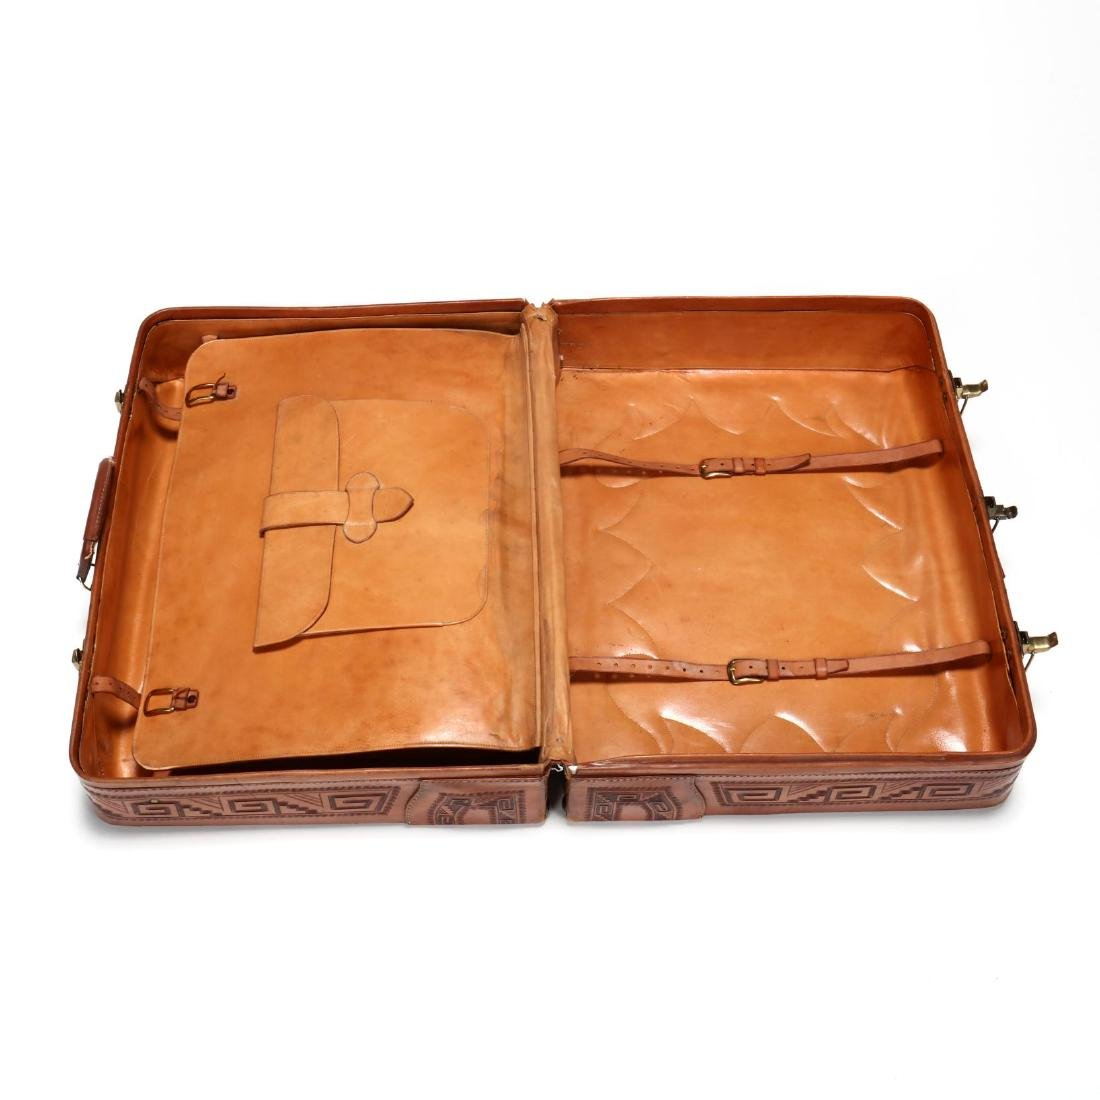 Hand Tooled Leather Suitcase, Mexico - 4